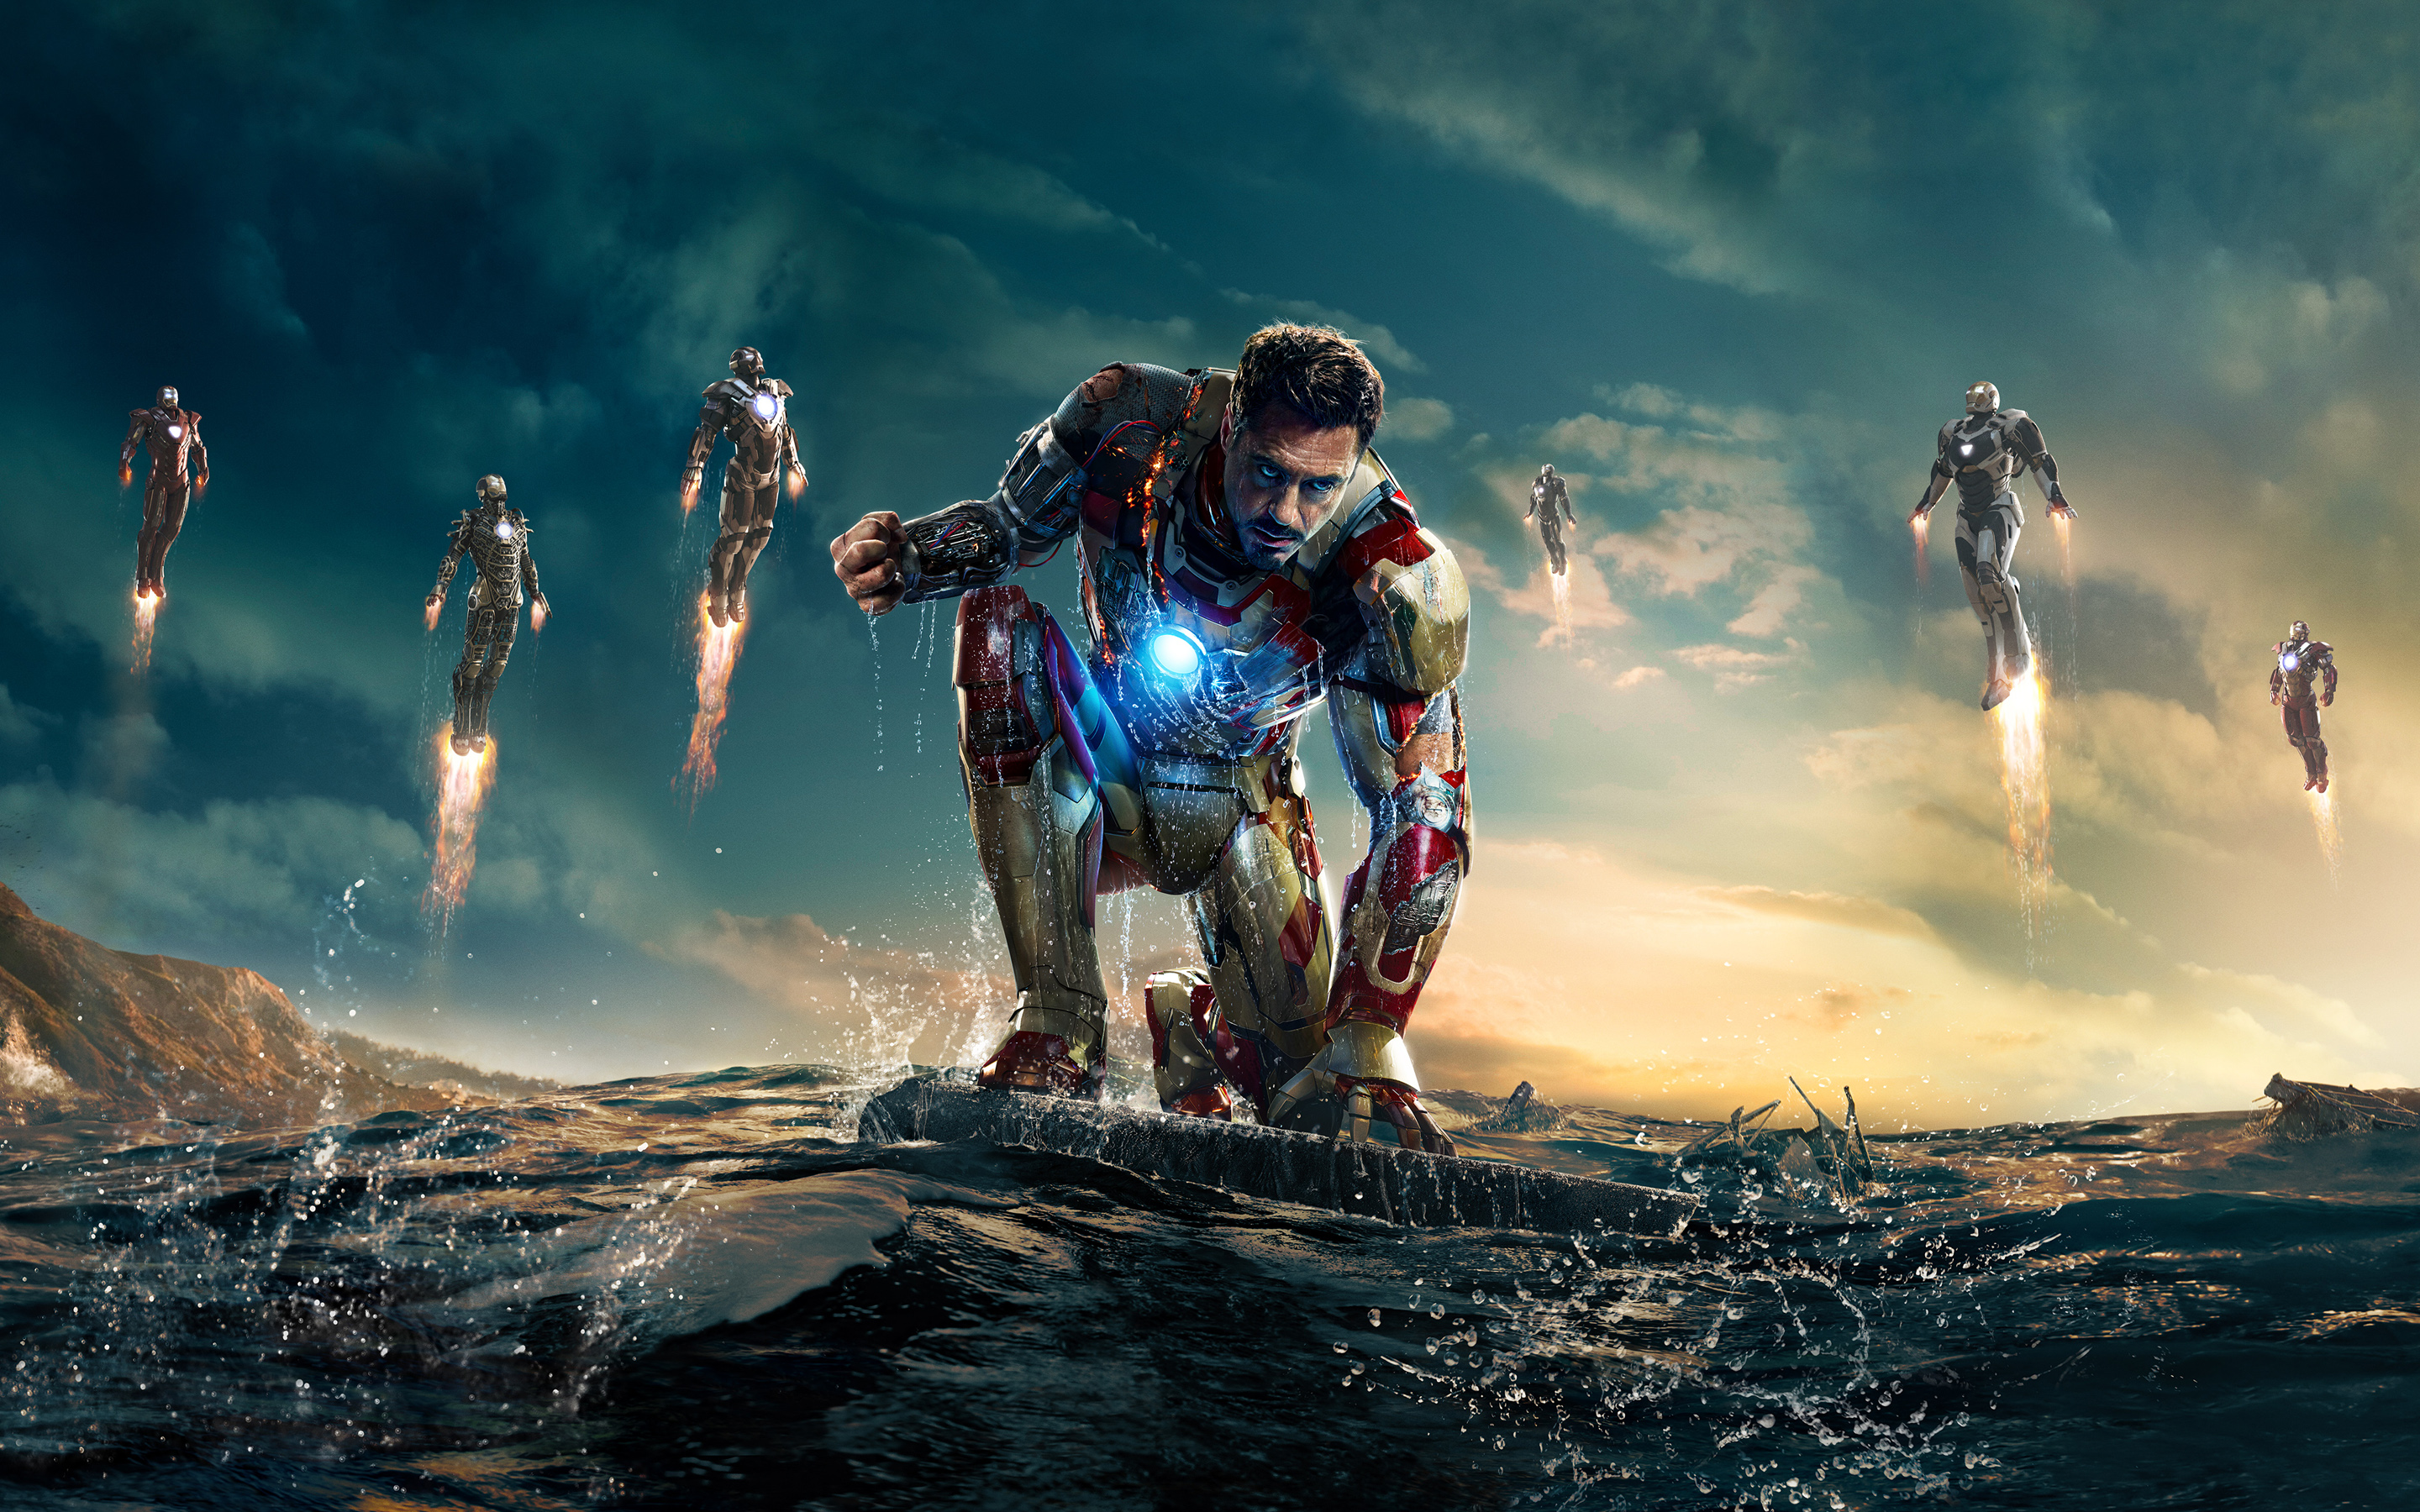 Wallpaper Of Iron Man 3